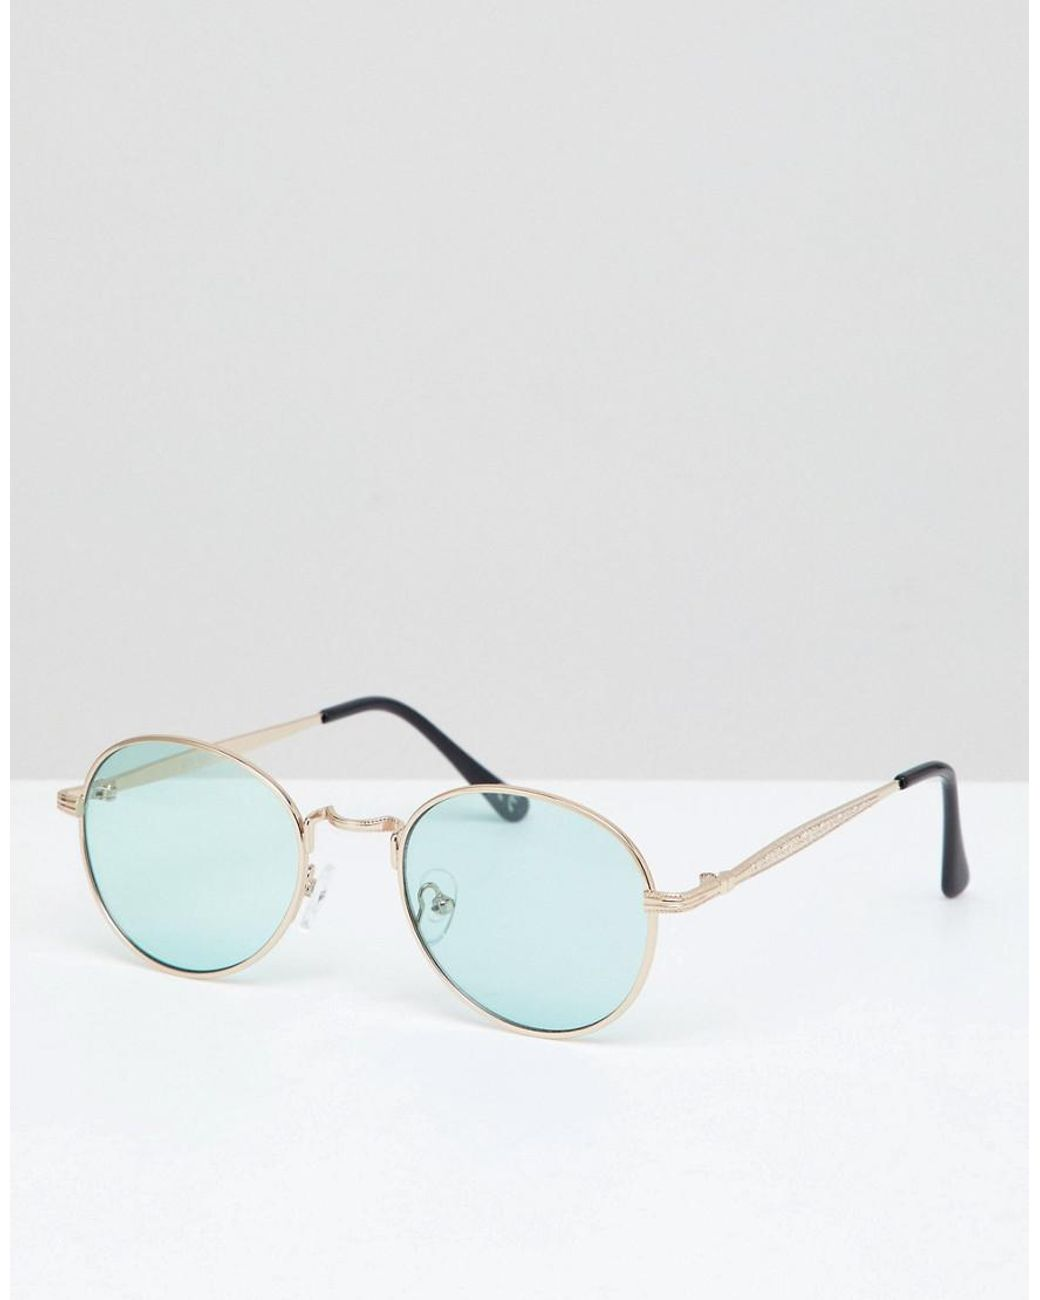 7f3d6763a9821 Long-Touch to Zoom. Long-Touch to Zoom. 1  2. ASOS - Metallic Metal Round  Sunglasses In Gold With Green Lens for Men - Lyst ...